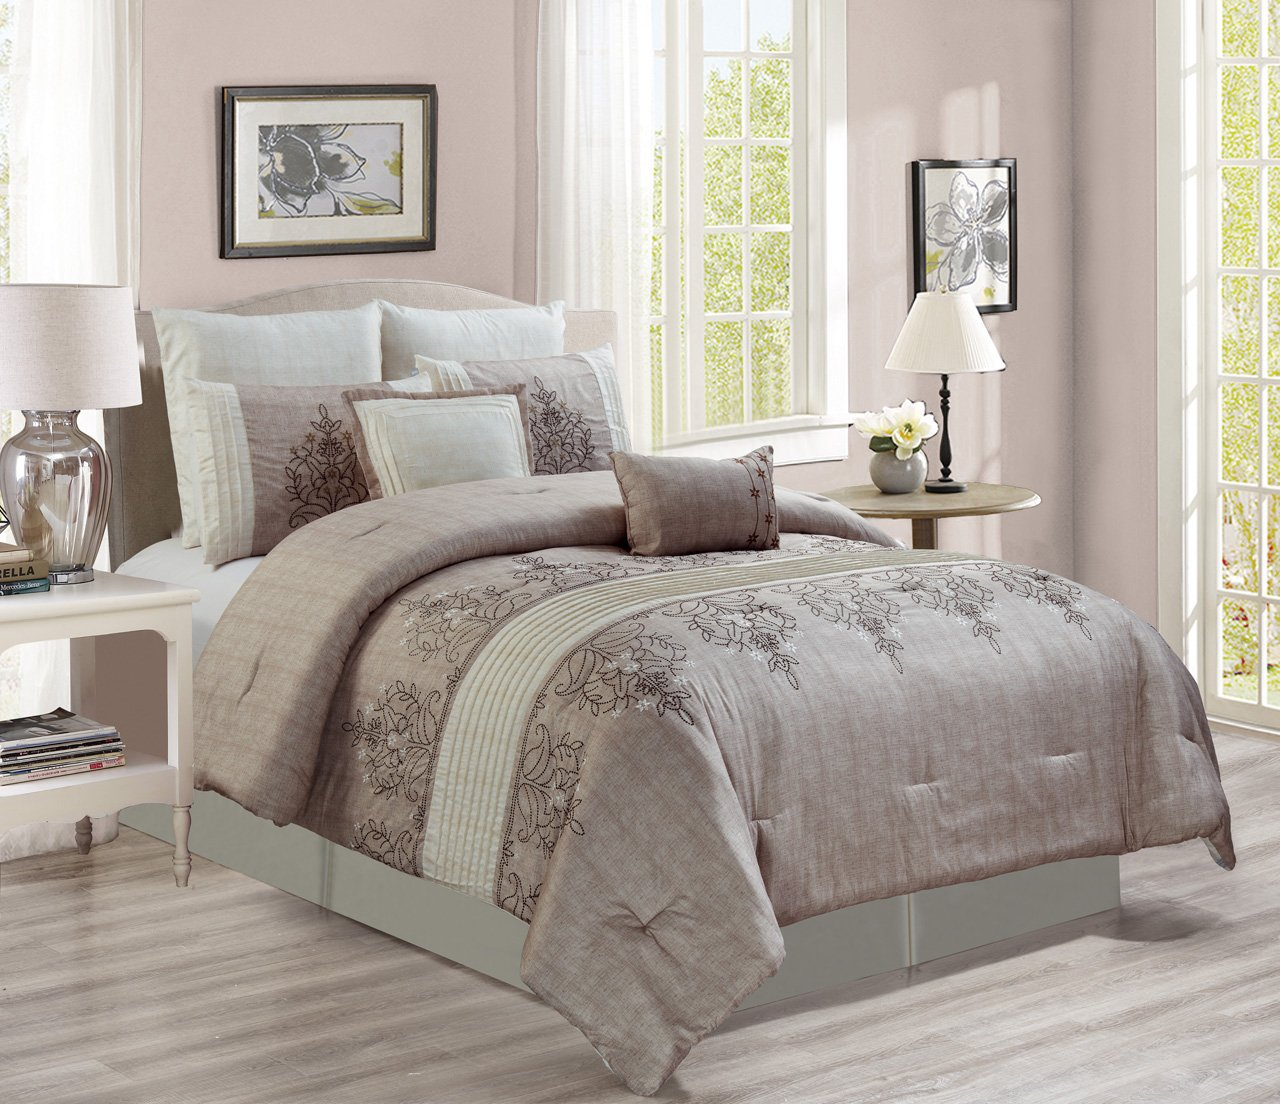 c home zi down comforter bedding ivory sets dillards comforters